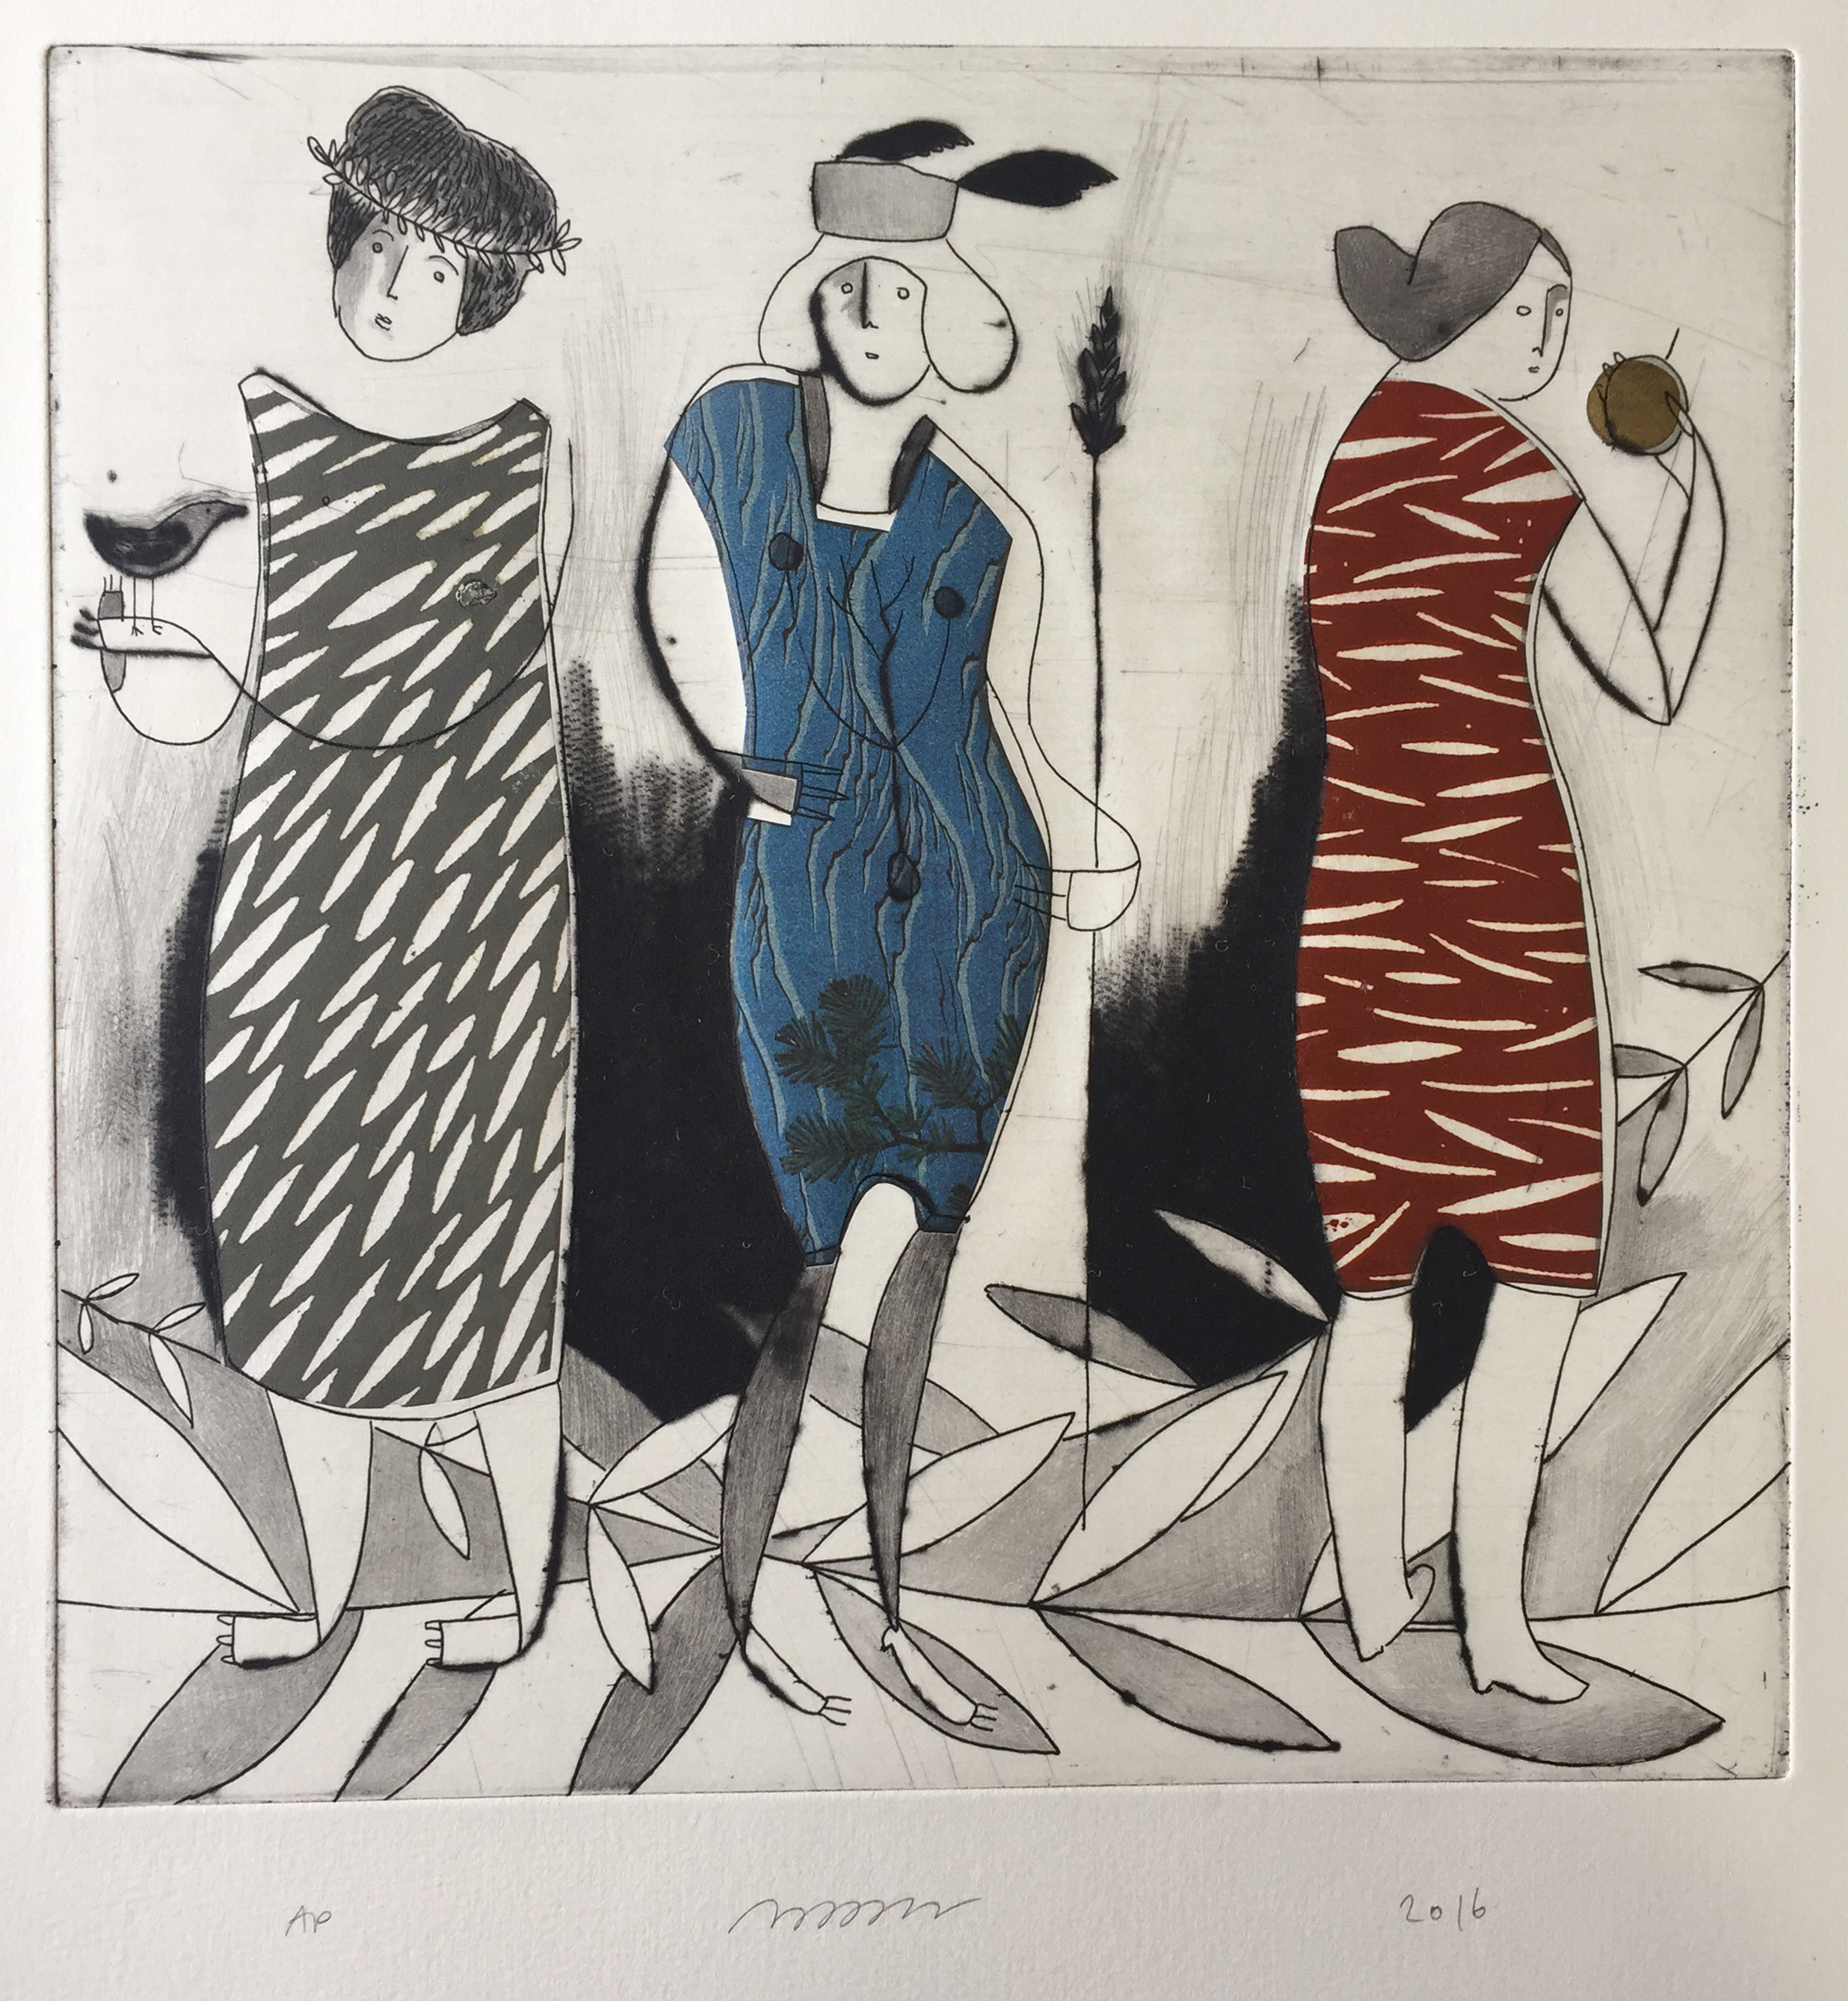 Nancy Popper , Maid of Orléans, etching, drypoint, and chine-collé